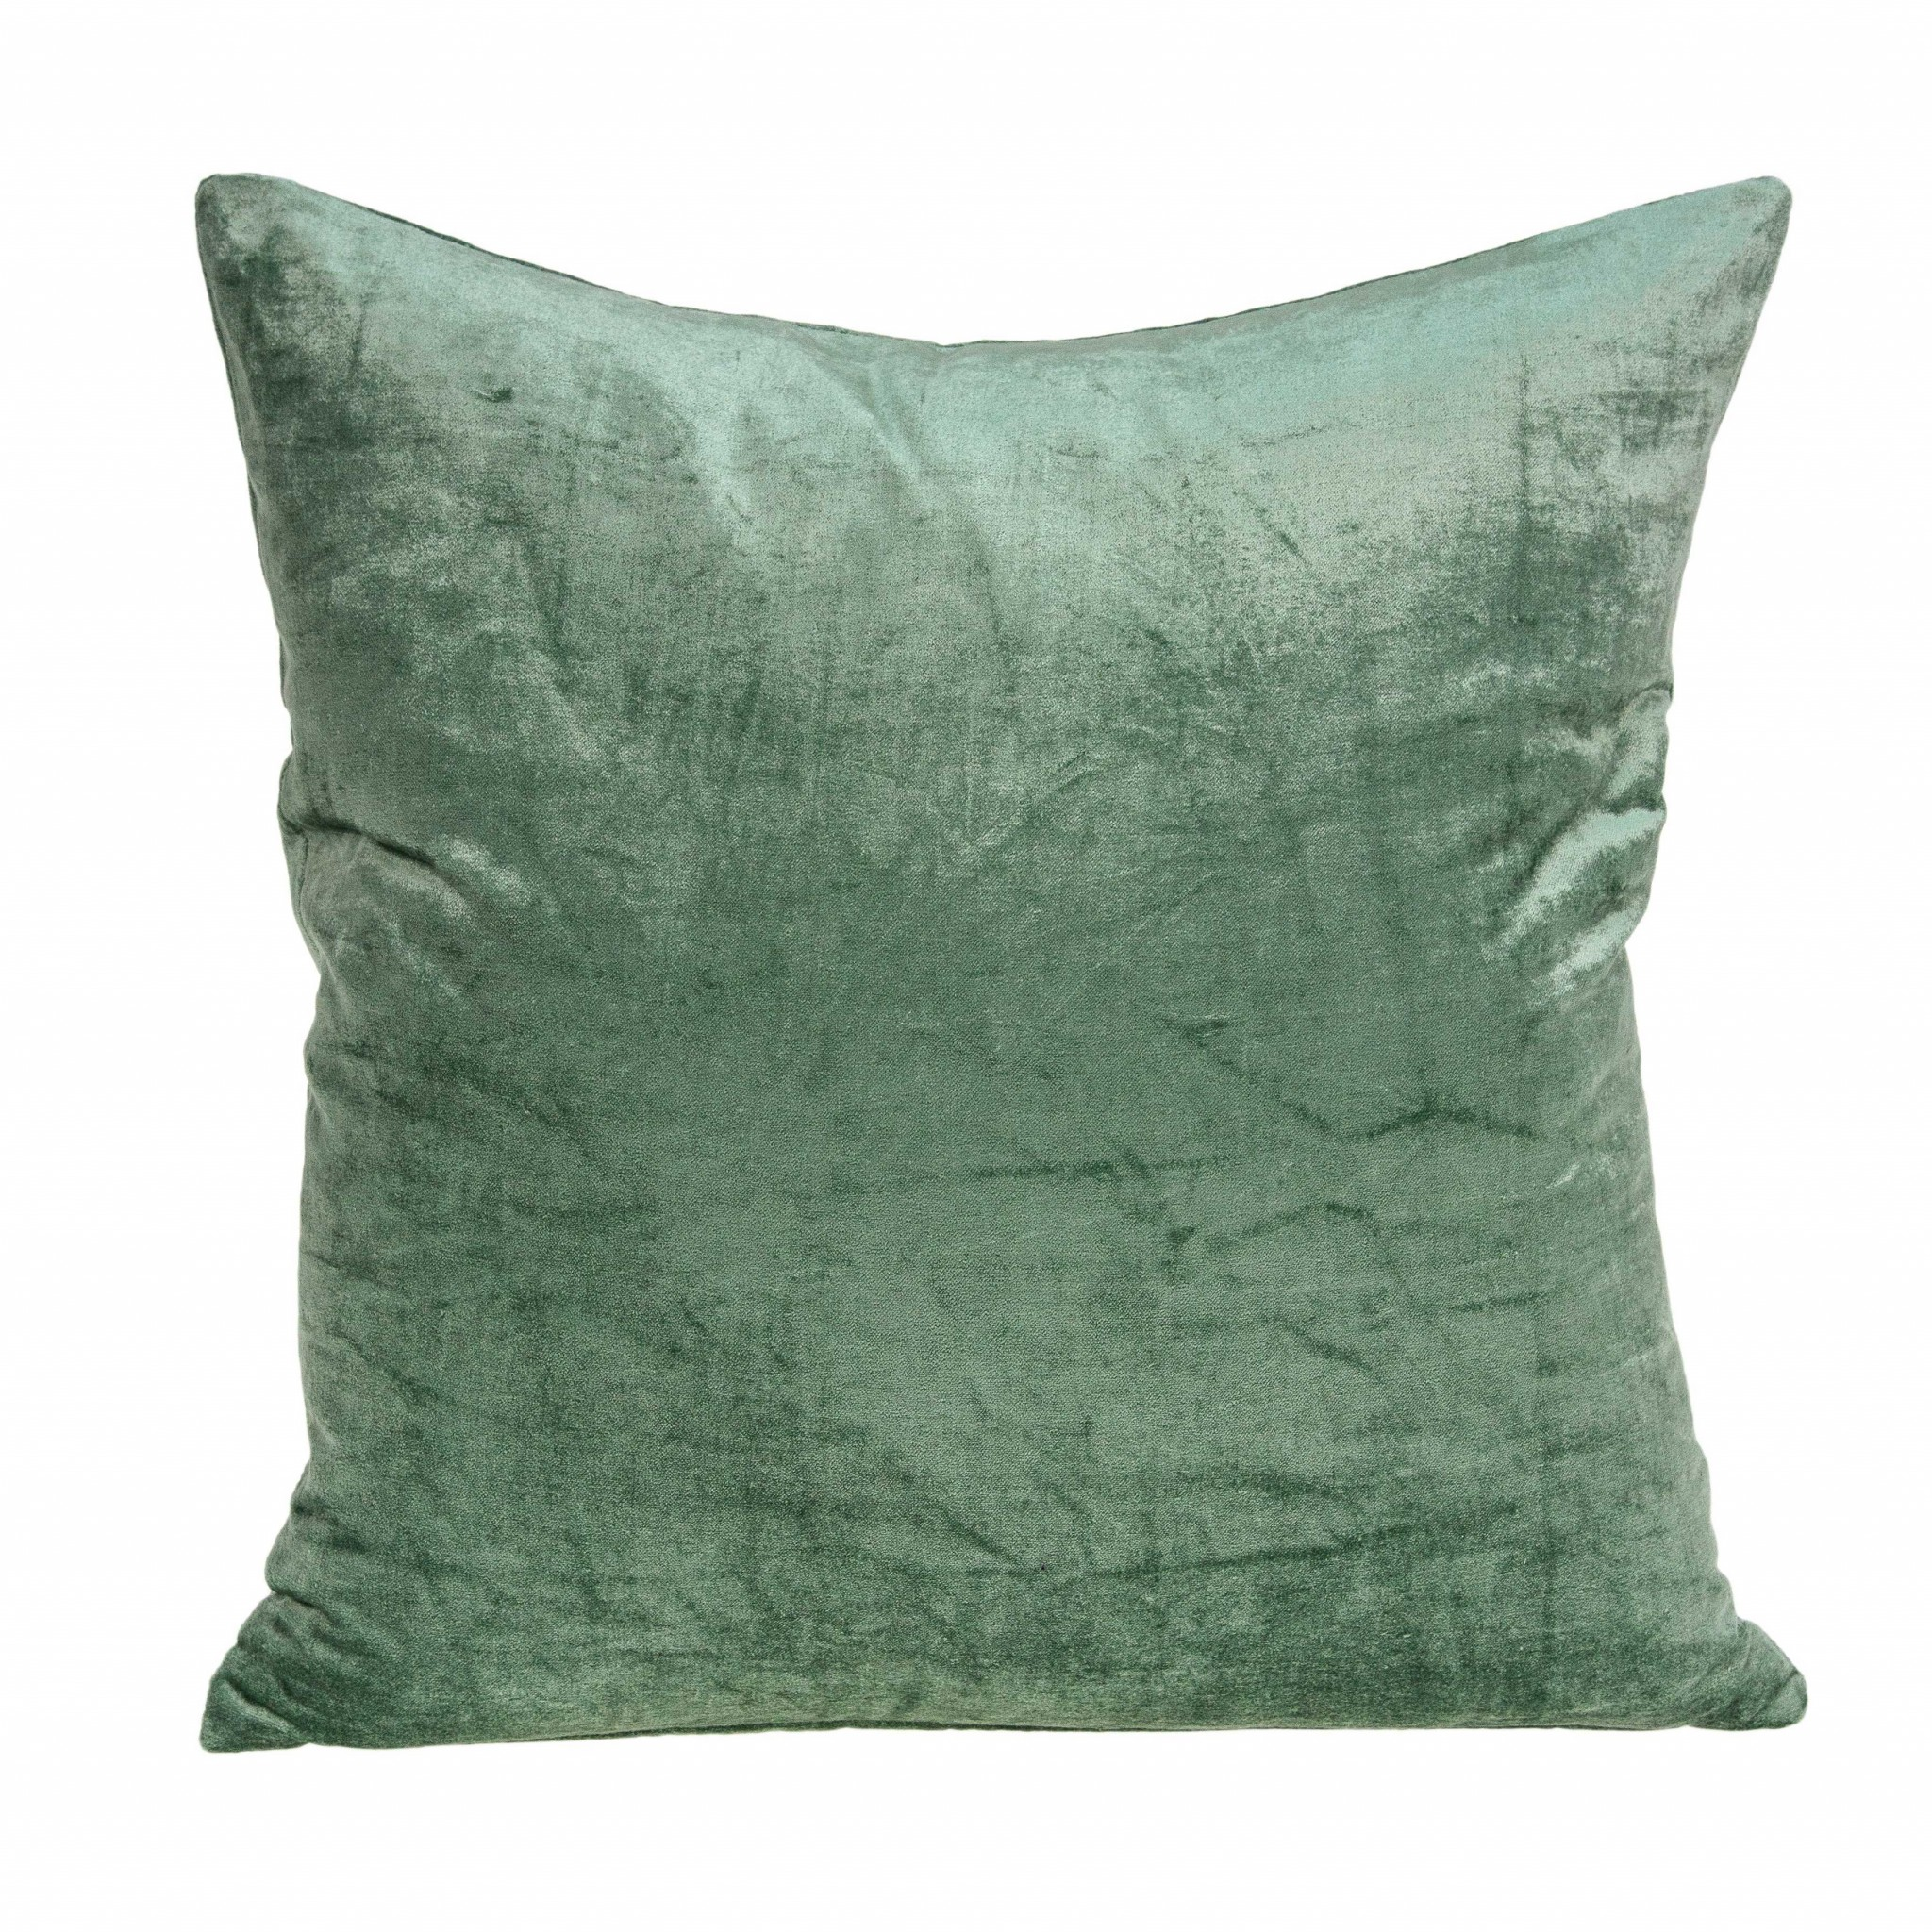 """18"""" X 0.5"""" X 18"""" Transitional Green Solid Pillow Cover"""